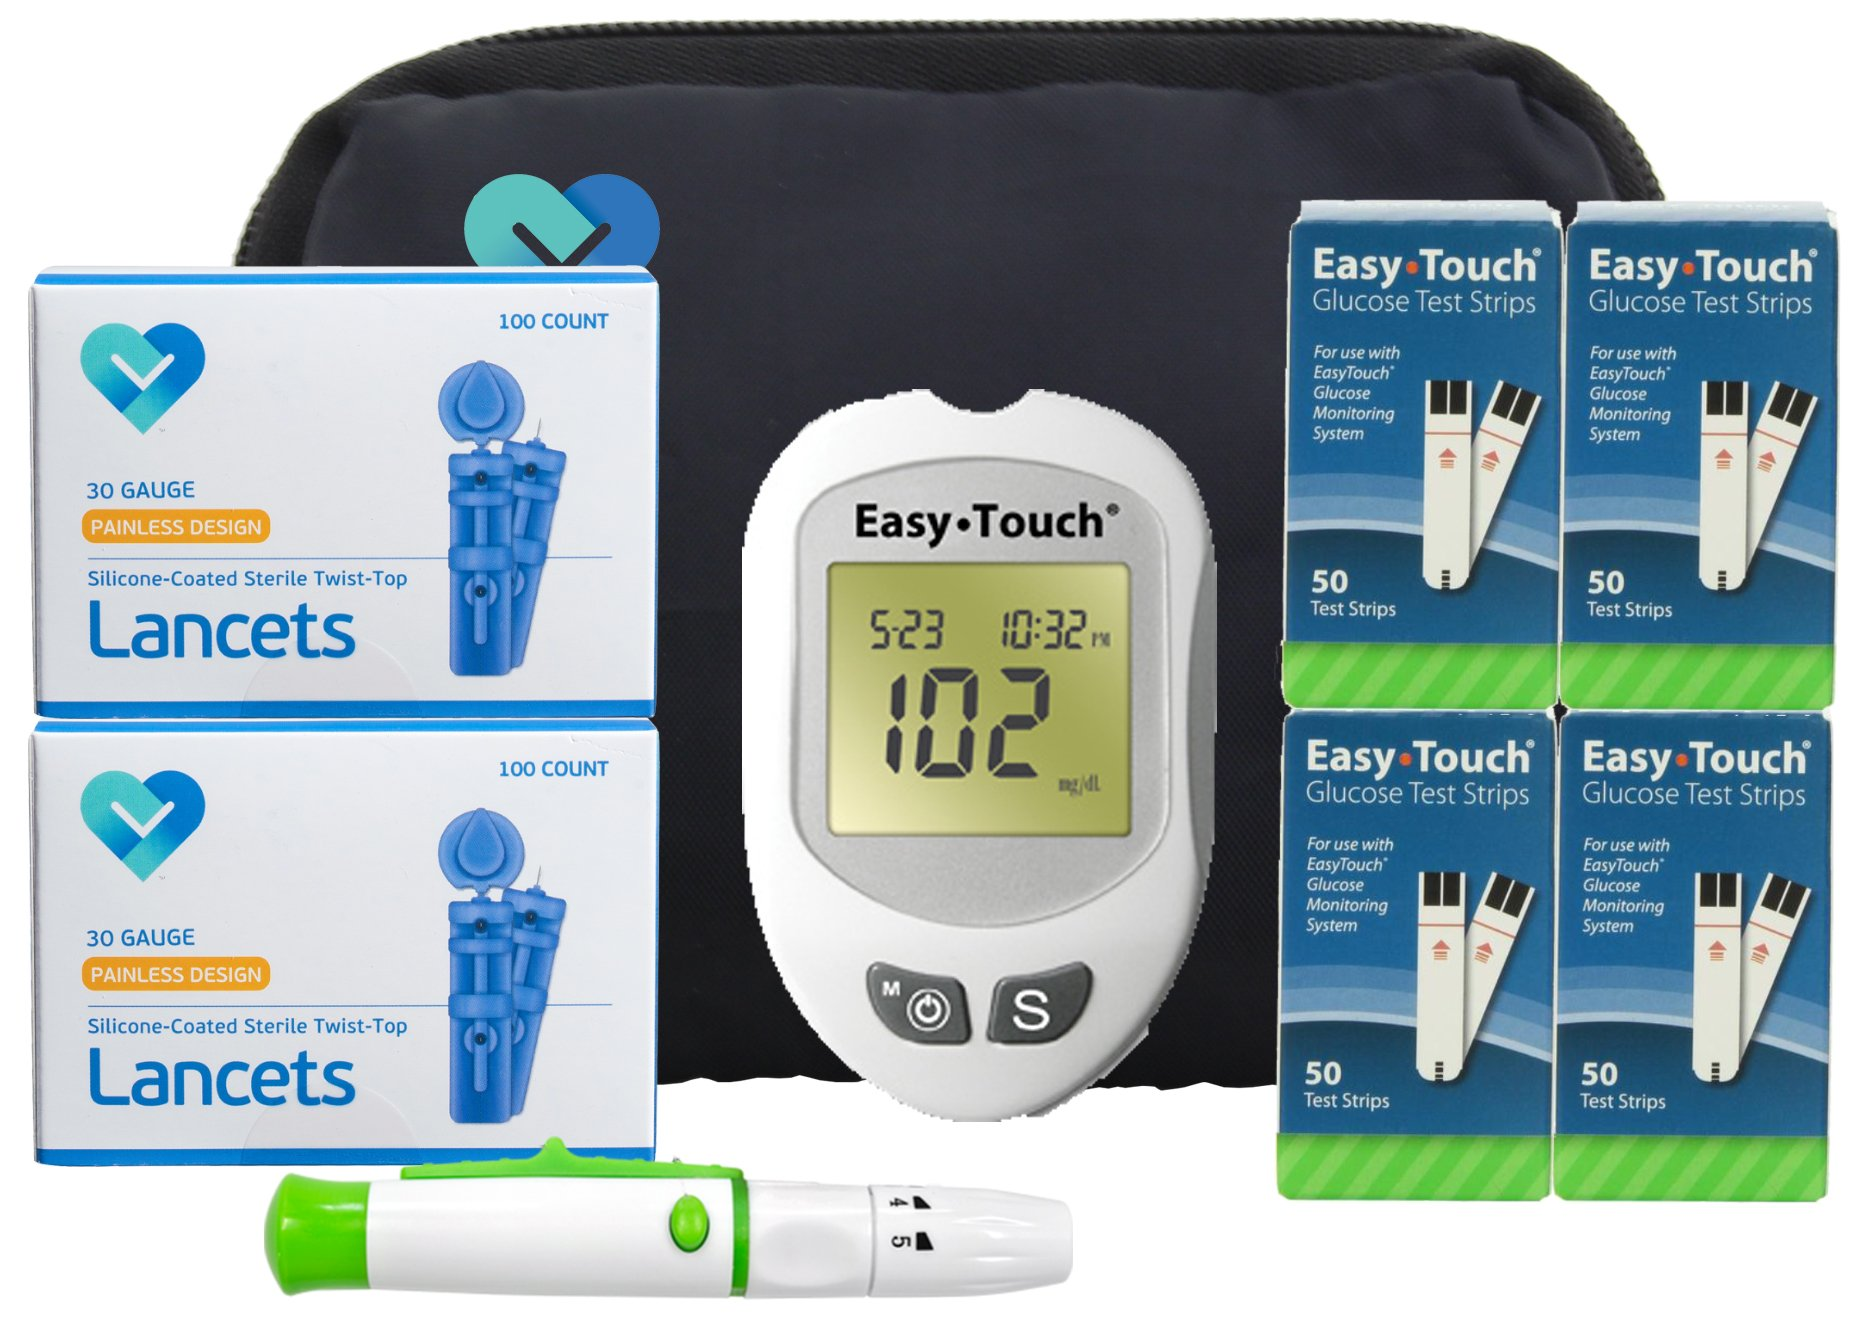 Easy Touch Diabetes Testing Kit, 100 Count | Easy Touch Meter, 100 Easy Touch Blood Glucose Test Strips, 100 Lancets, Easy Touch Lancing Device, Owner's Manual, Log Book & Carry Case (200 Count)